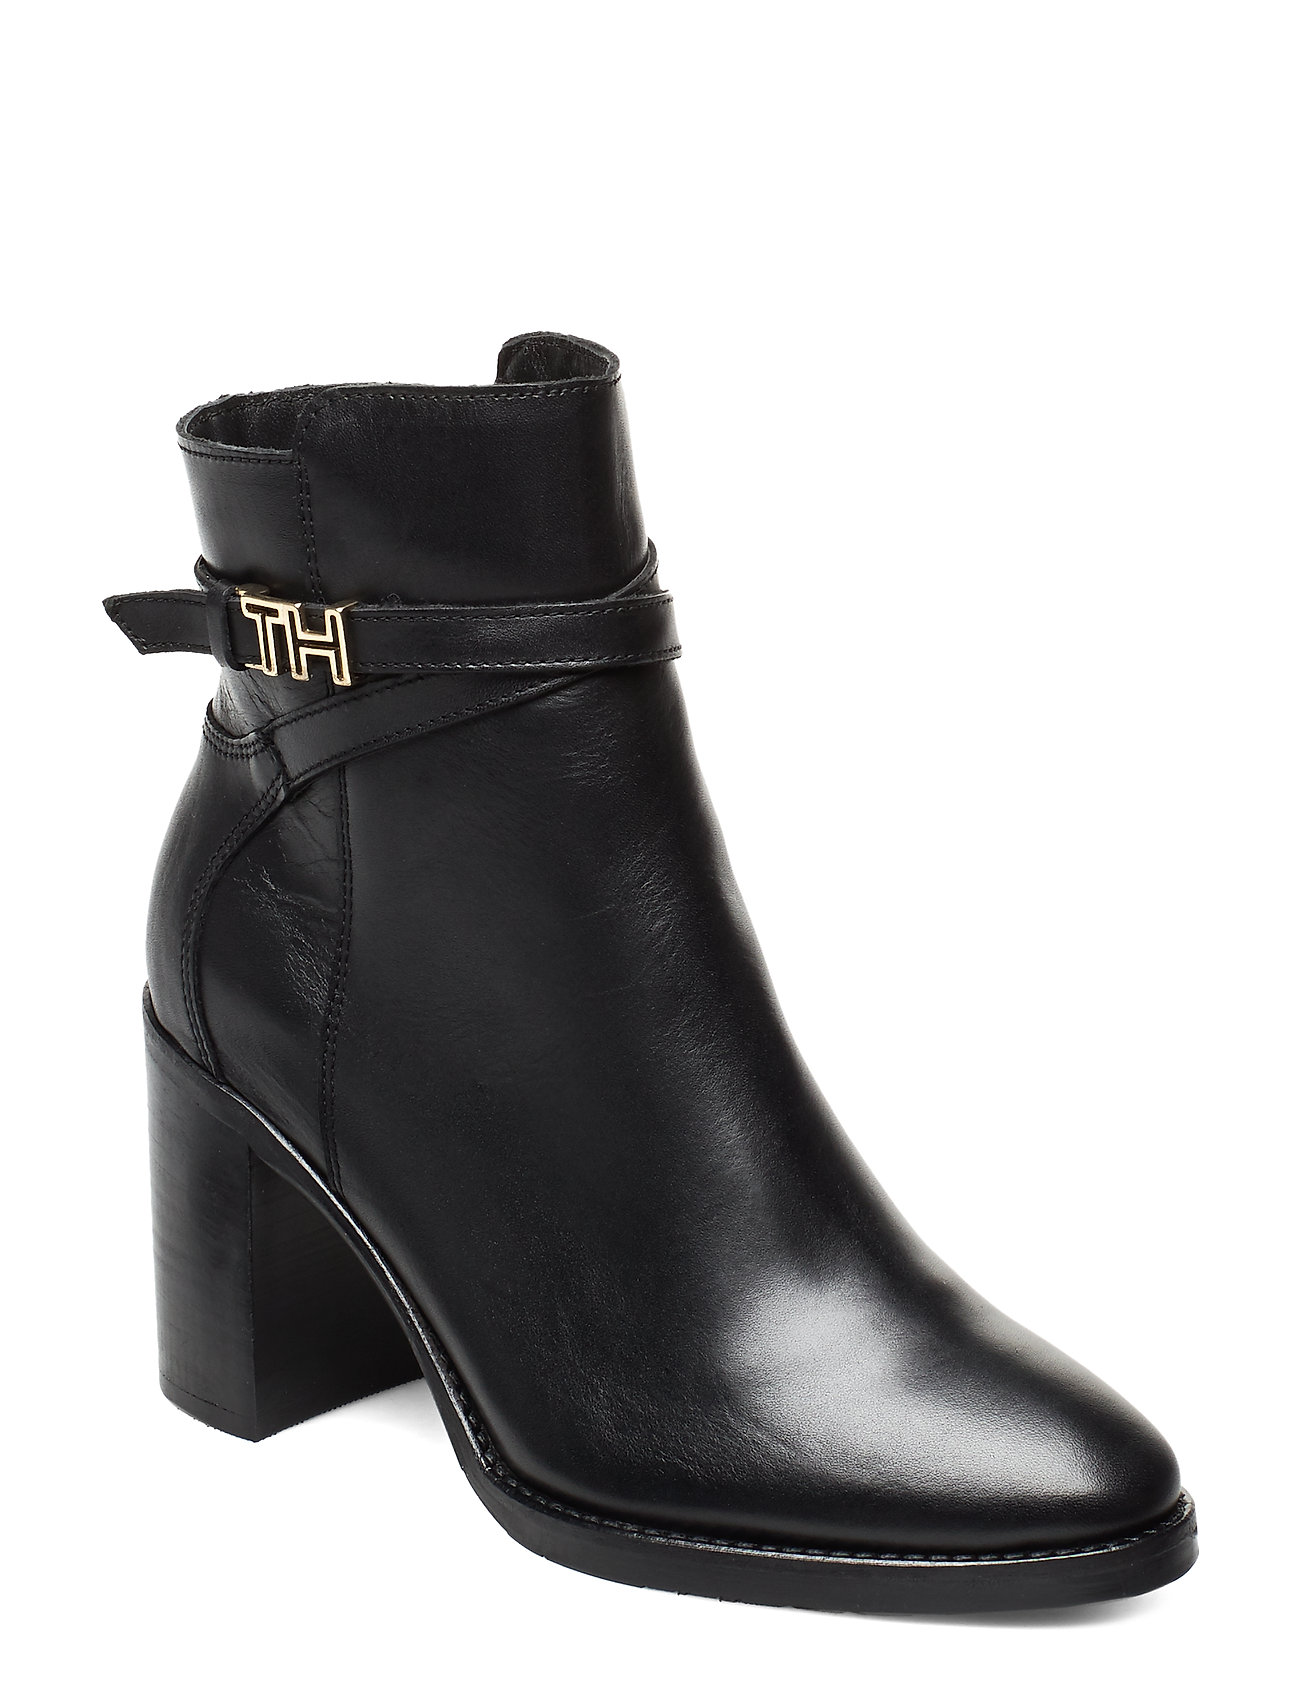 Image of Th Hardware Leather High Boot Shoes Boots Ankle Boots Ankle Boots With Heel Sort Tommy Hilfiger (3247206559)